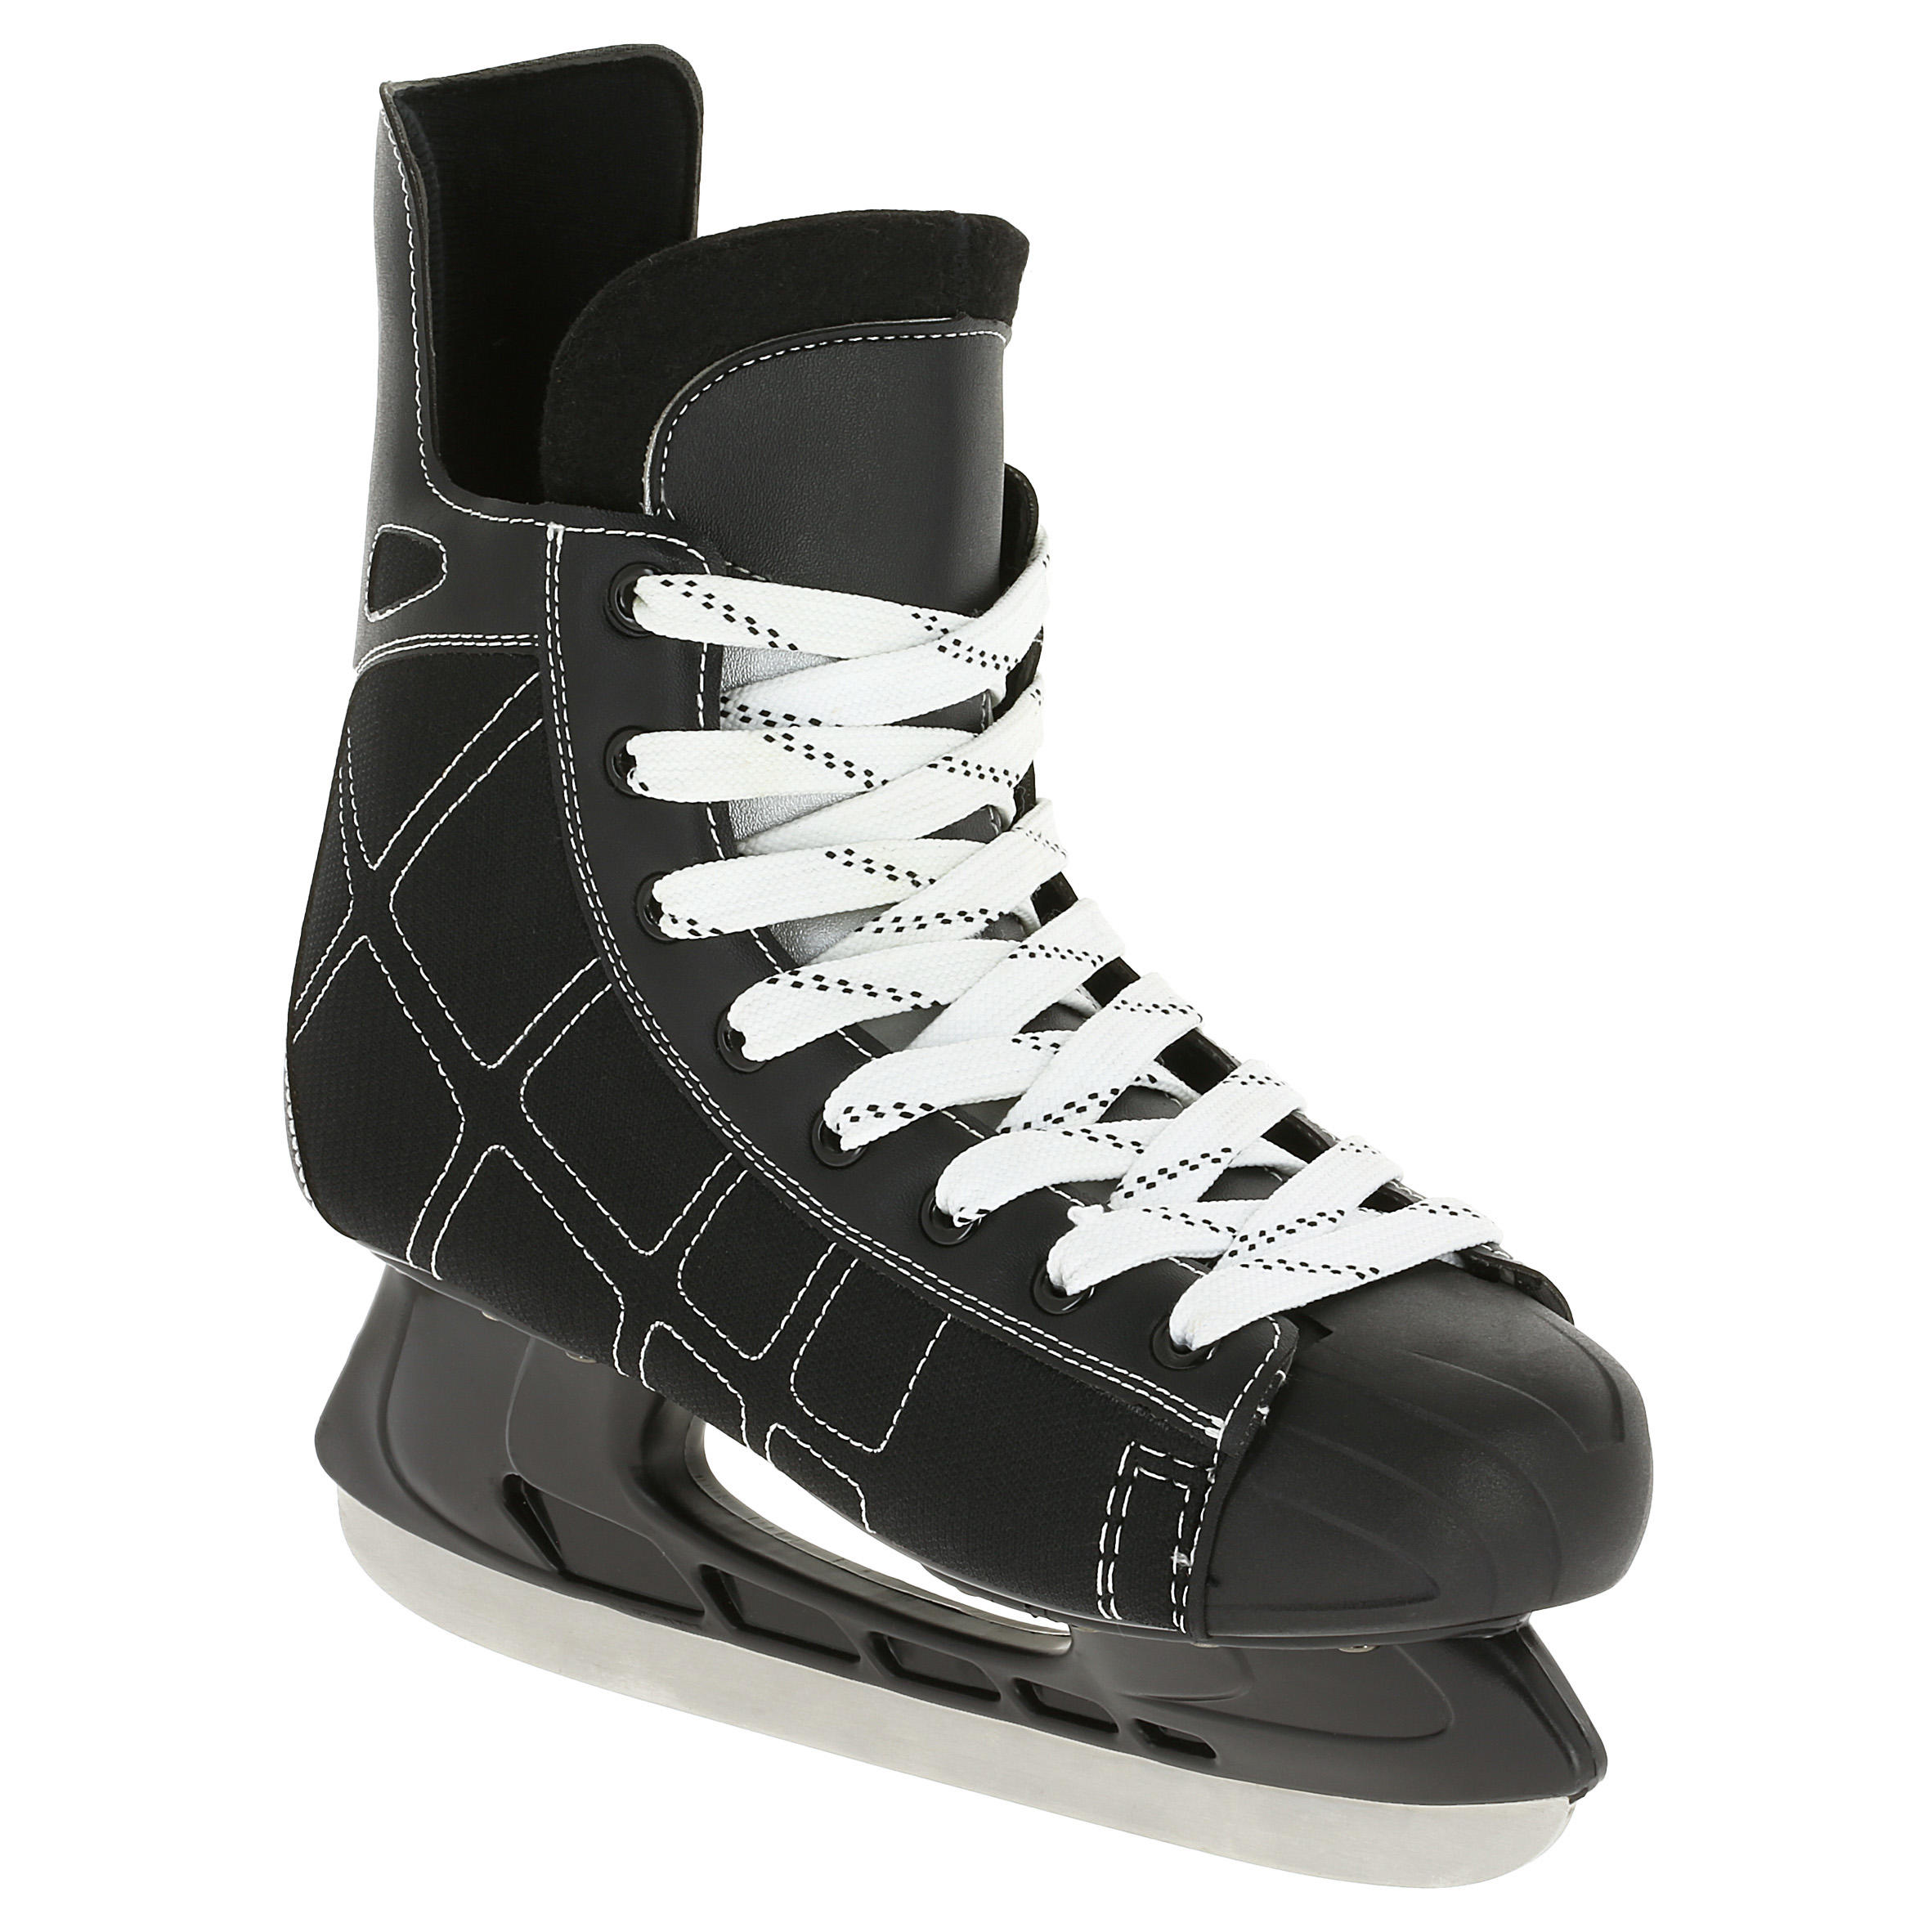 XLR Zero Junior Ice Hockey Skates - Black